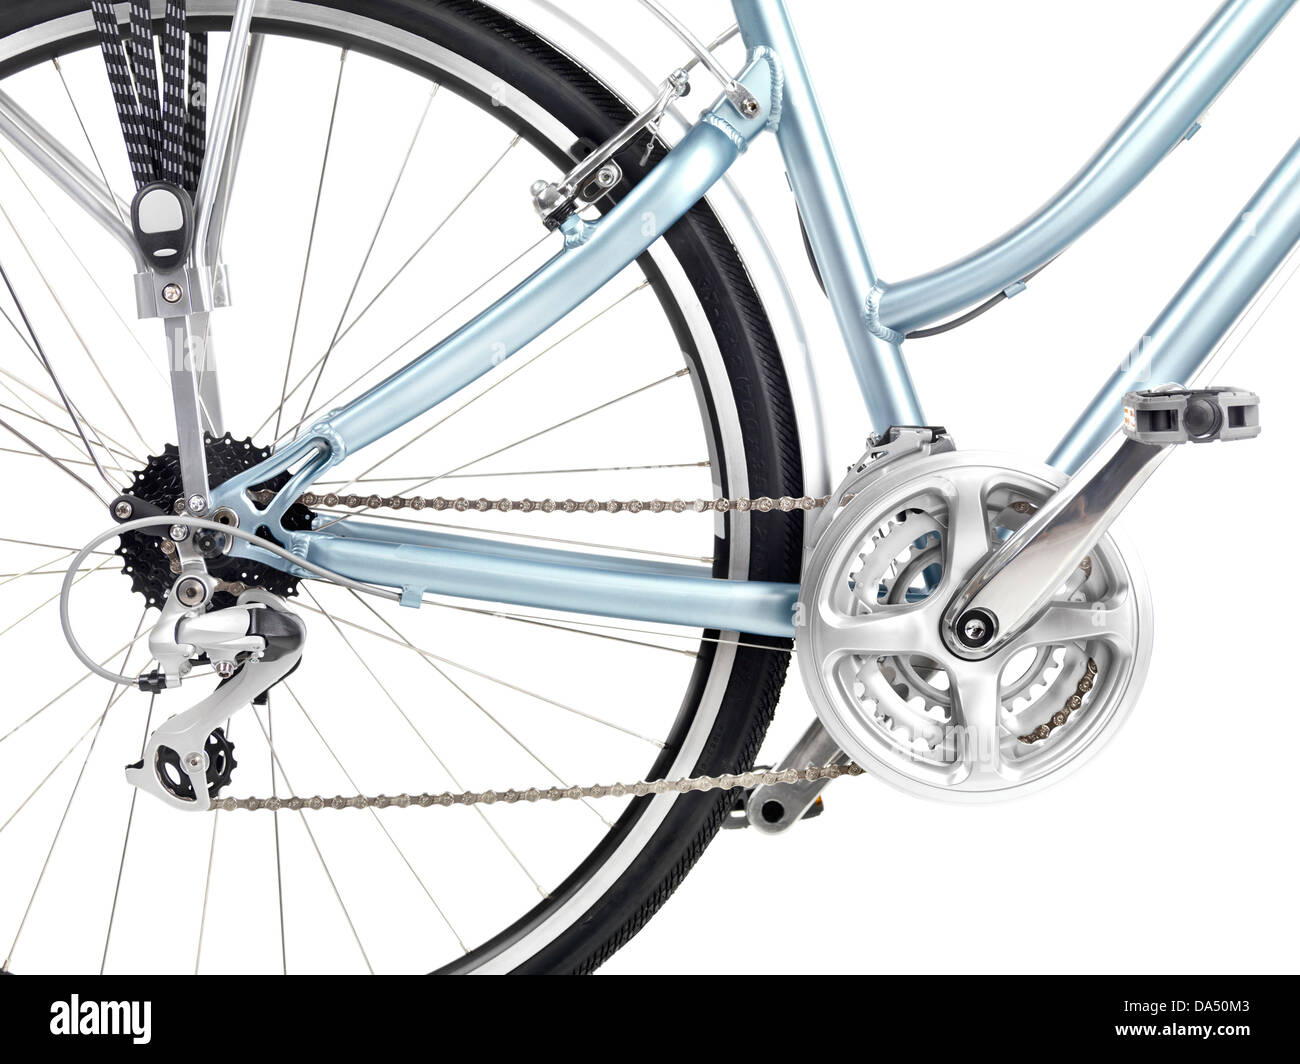 Bicycle rear wheel set of gears and pedals closeup isolated on white background - Stock Image